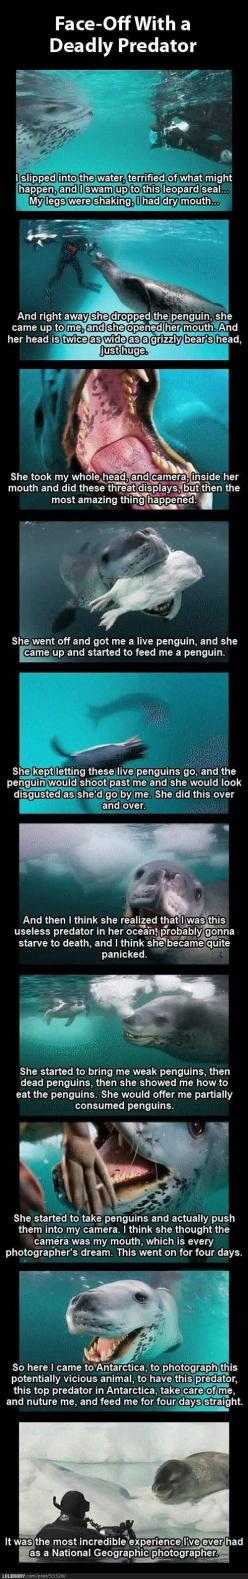 Amazing: Leopard Seals, Face Off, Deadly Leopard, Geographic Photographer, National Geographic, Dream Job, Deadly Predator, Animal